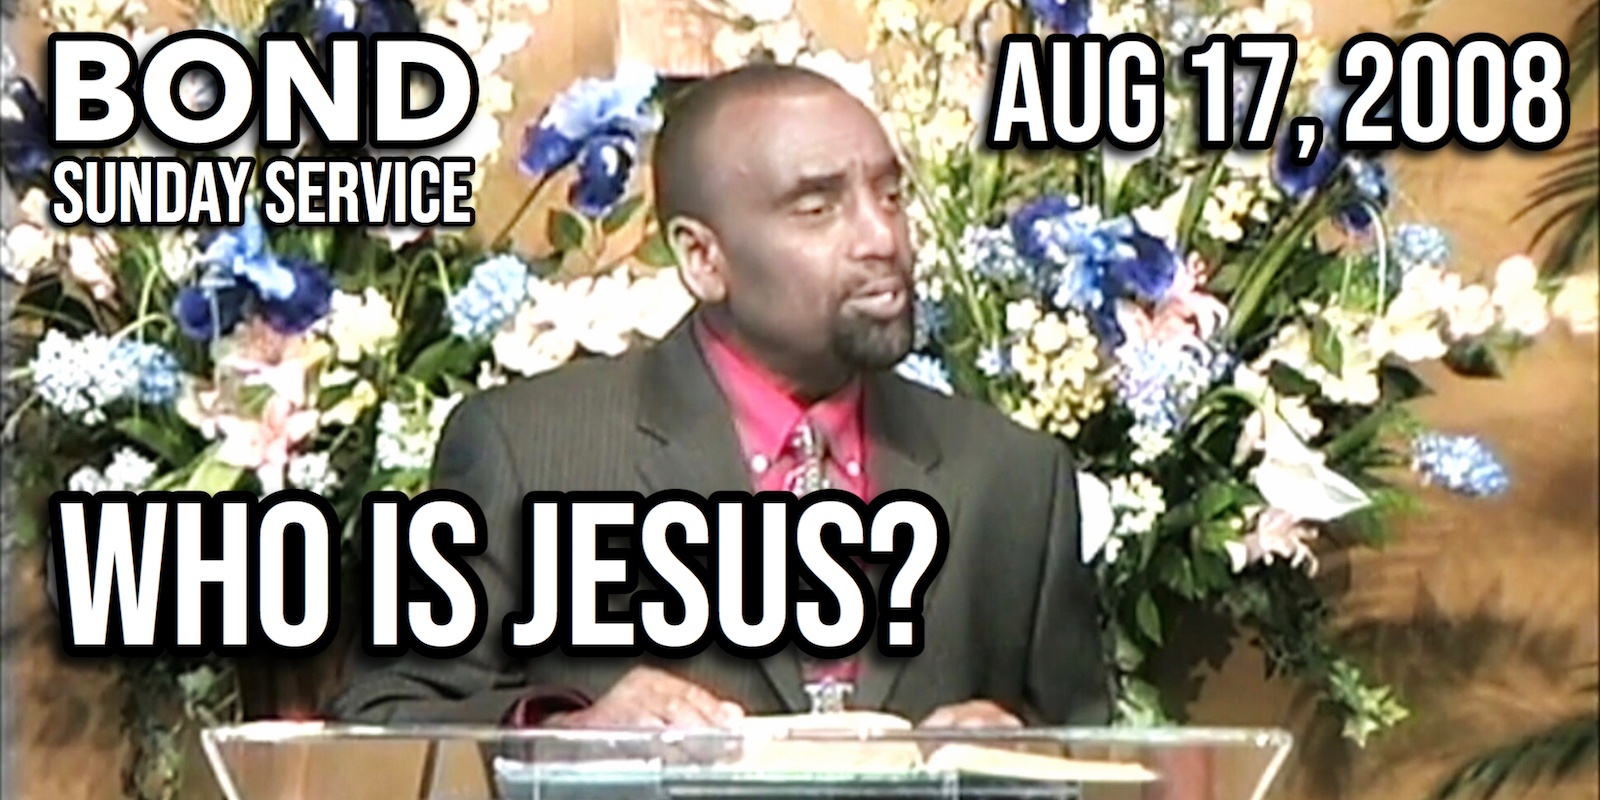 Who Is Jesus? (Sunday Service, Aug 17, 2008)